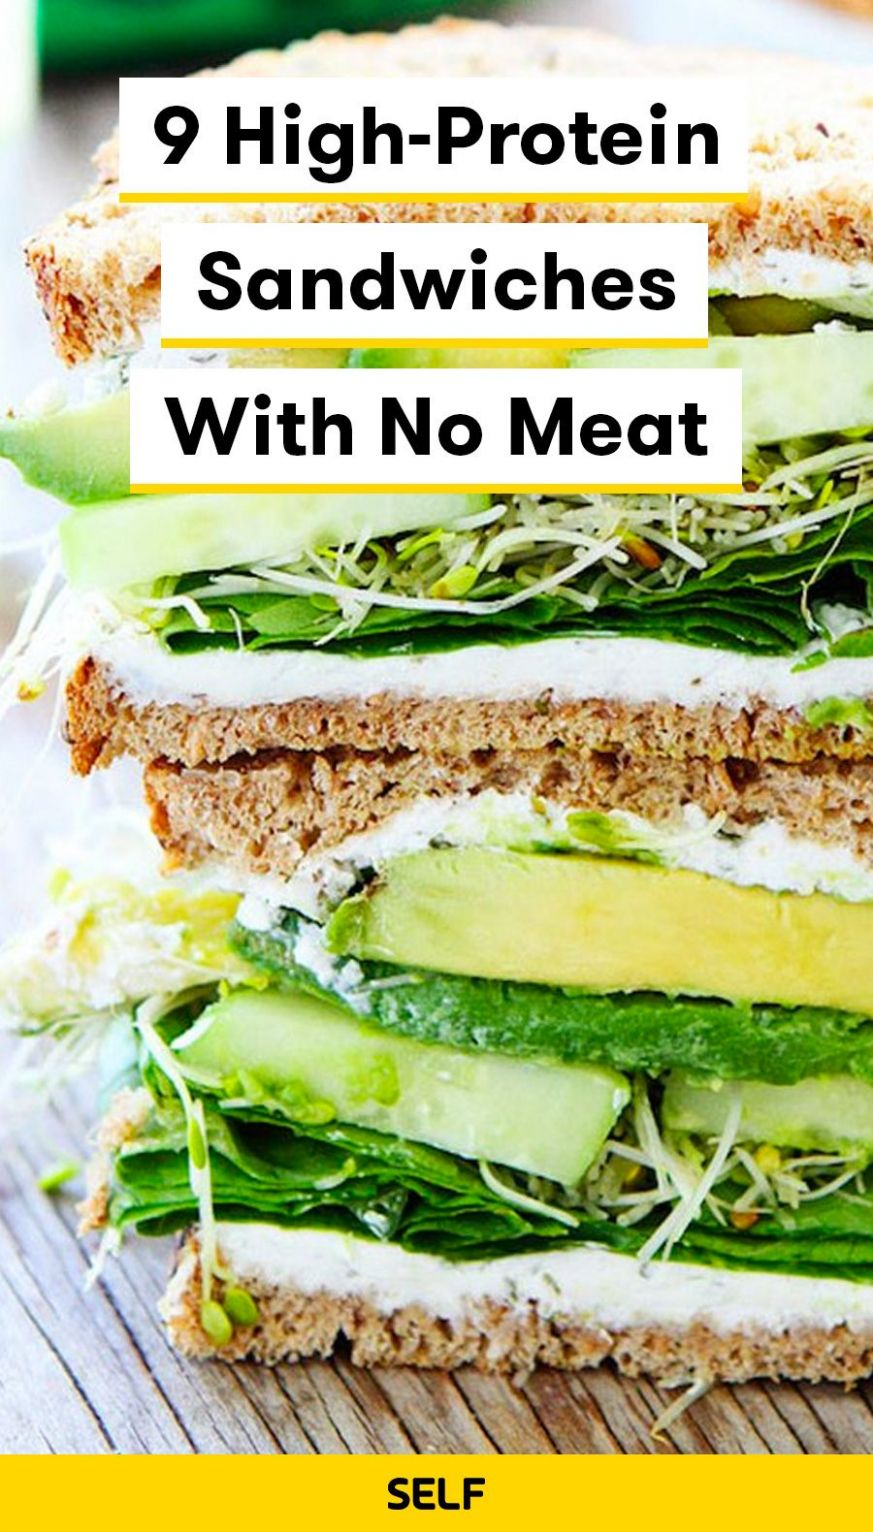 12 High-Protein Sandwiches With No Meat | High protein vegetarian ..